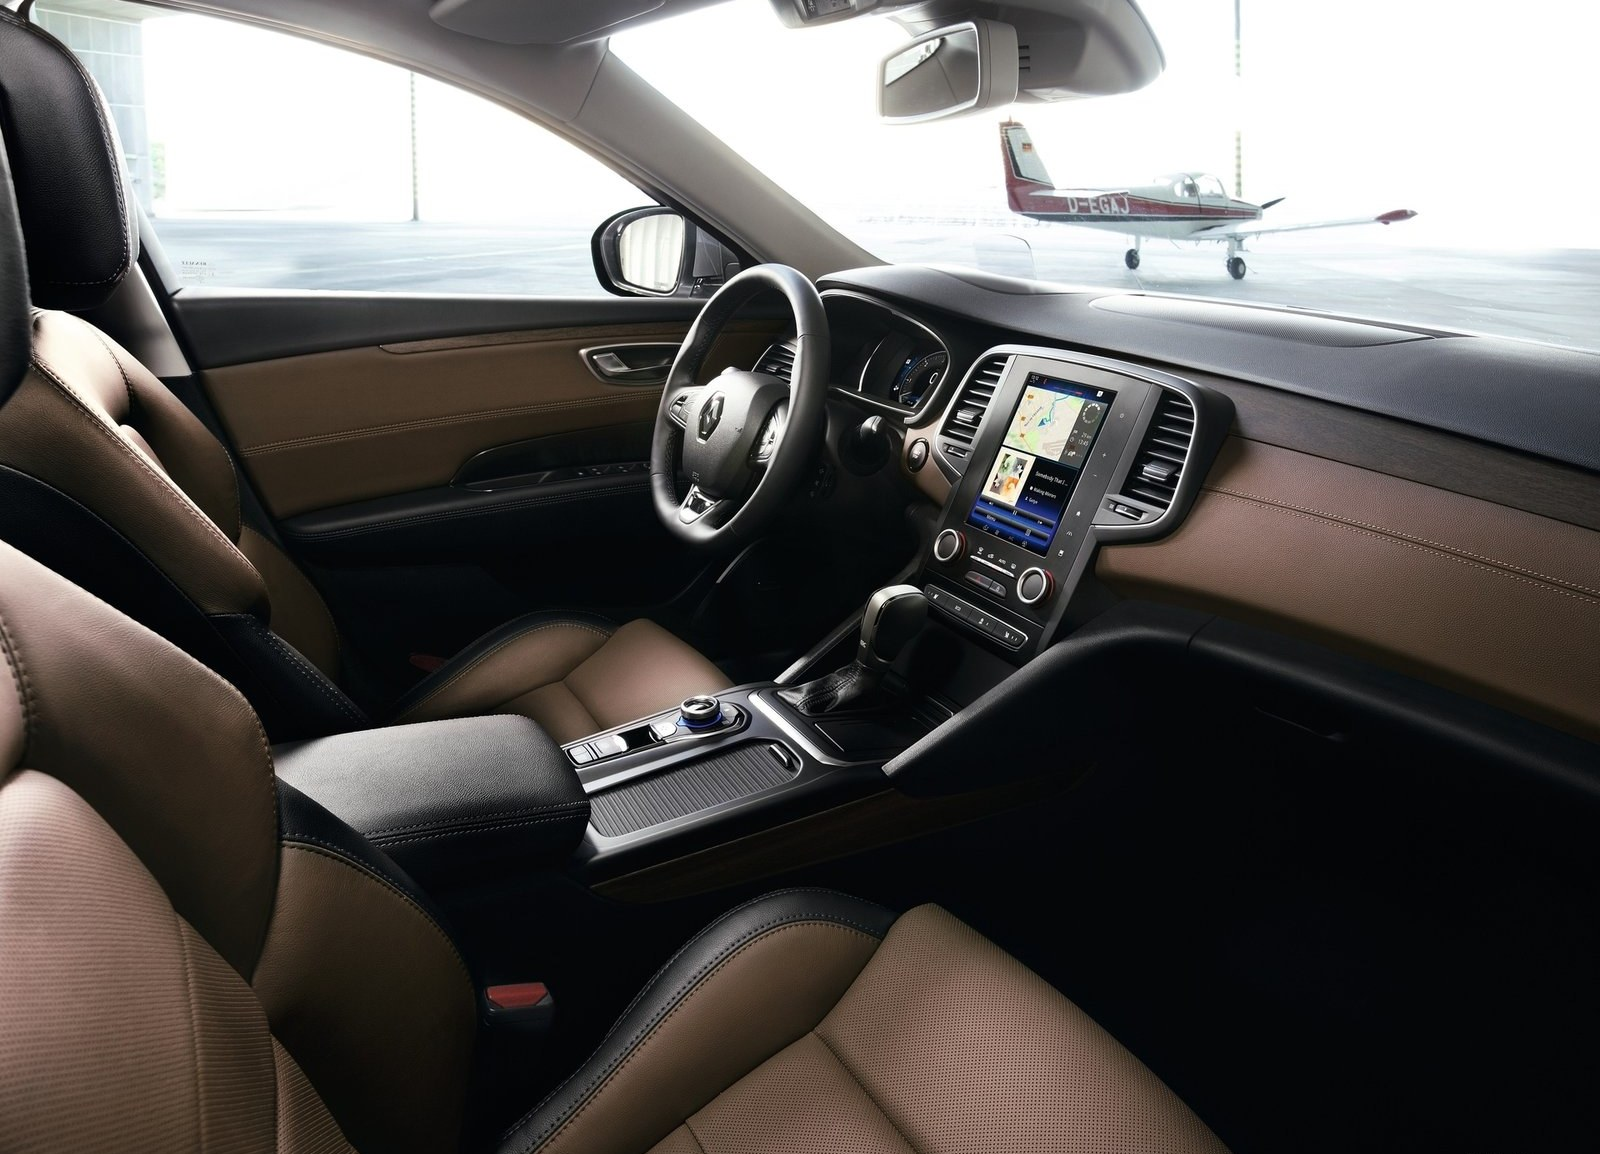 2016 Renault Talisman Front Interior (View 9 of 14)